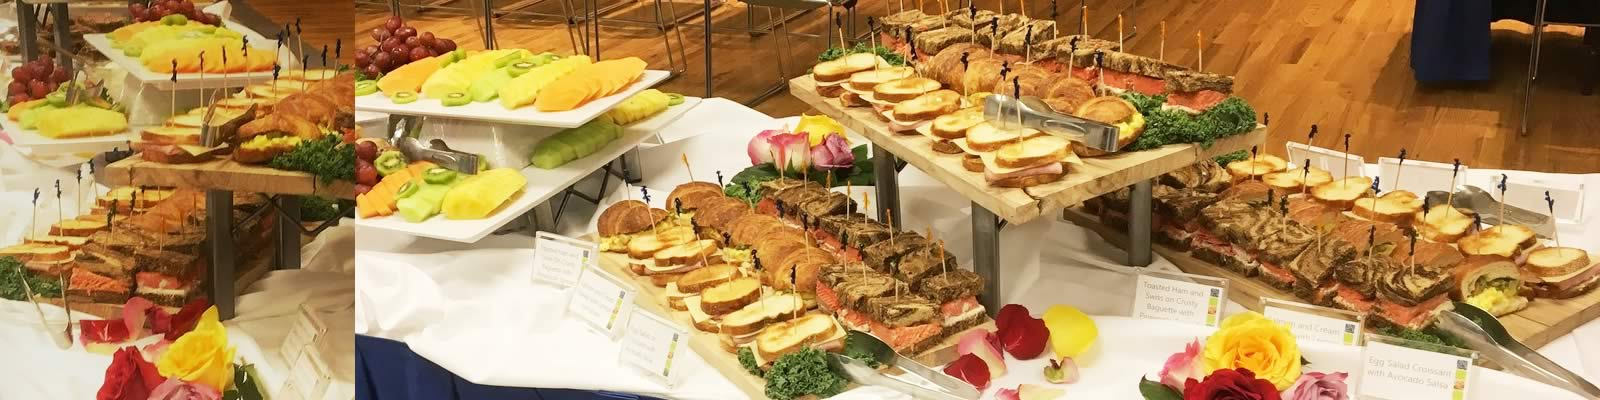 Catered food spread of sliced fruits, sandwiches and flower arrangements